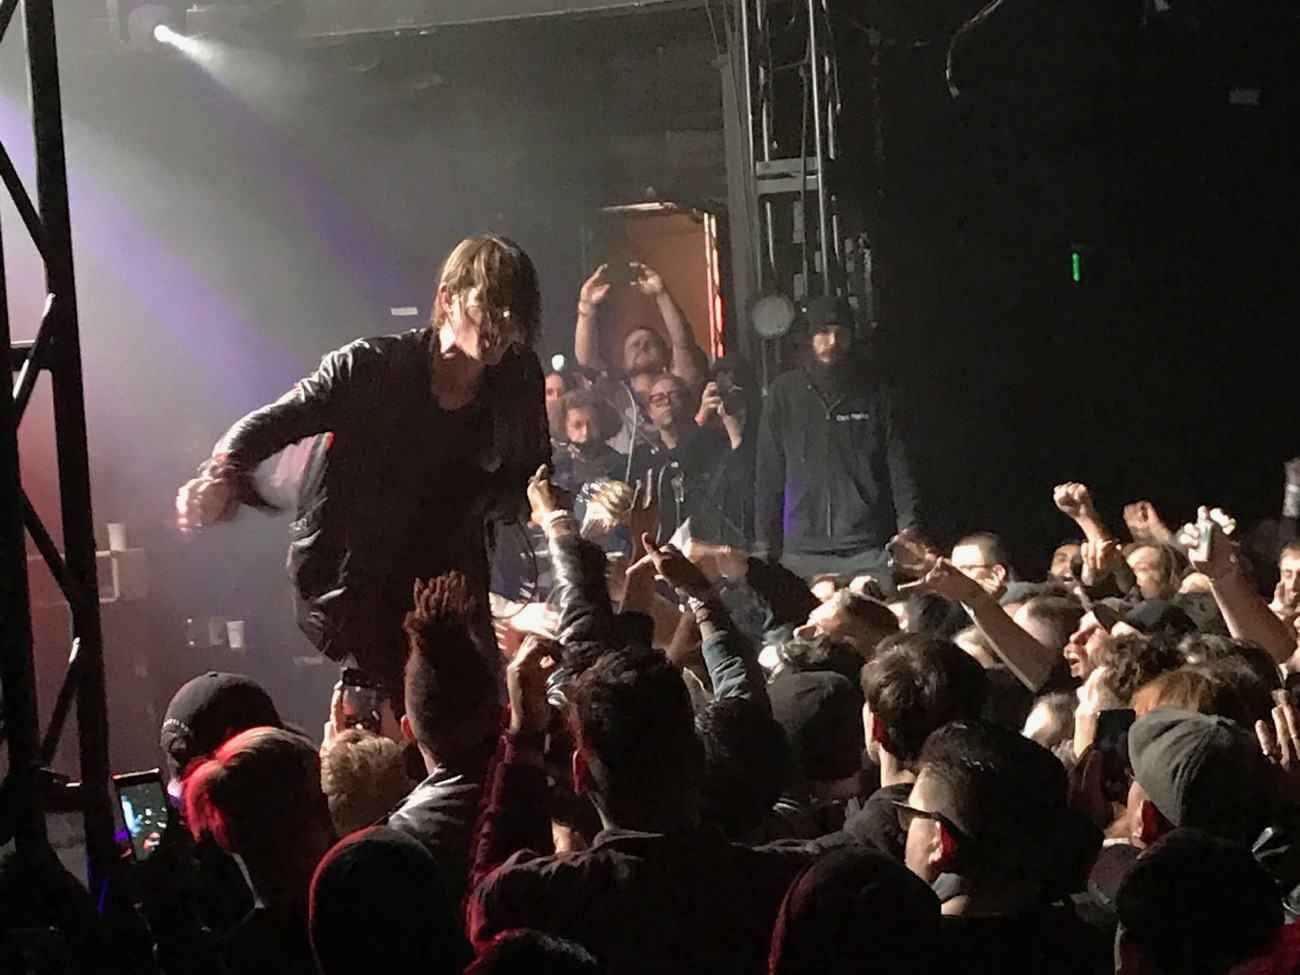 American Nightmare @ The Echoplex 3/10/18.